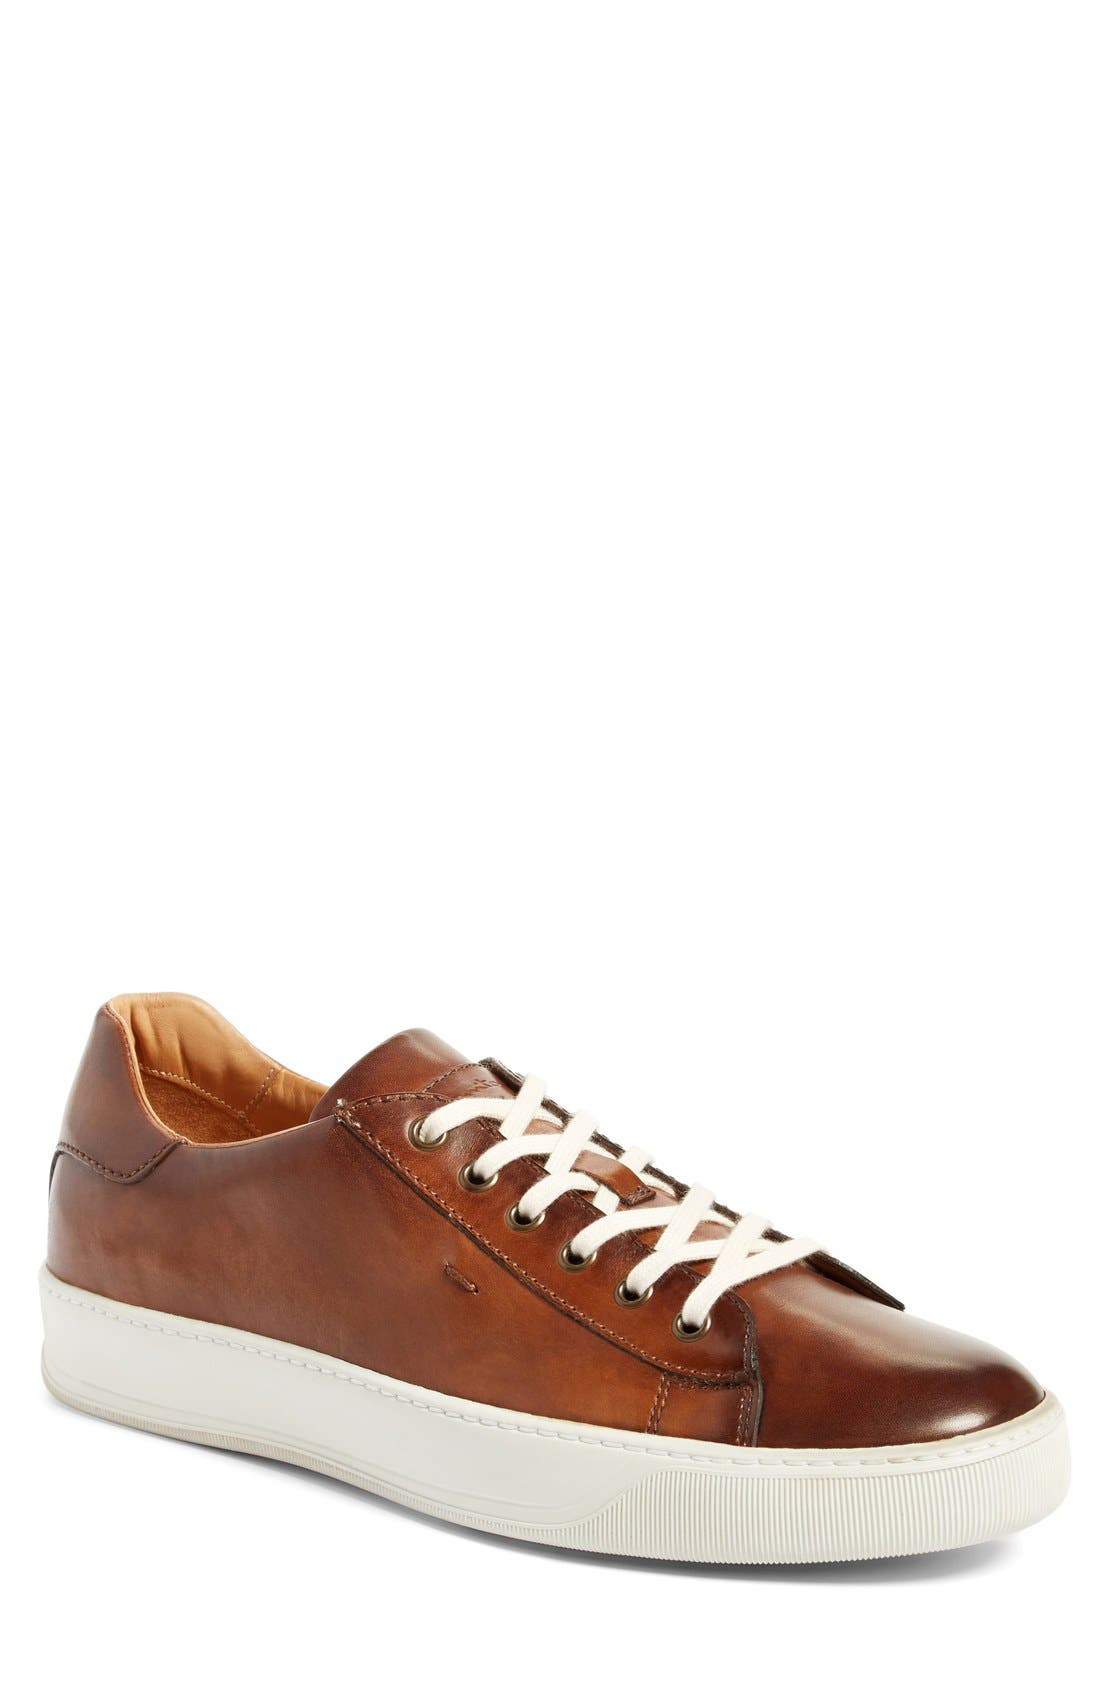 'Apache' Lace-Up Sneaker,                             Main thumbnail 1, color,                             Brown Leather